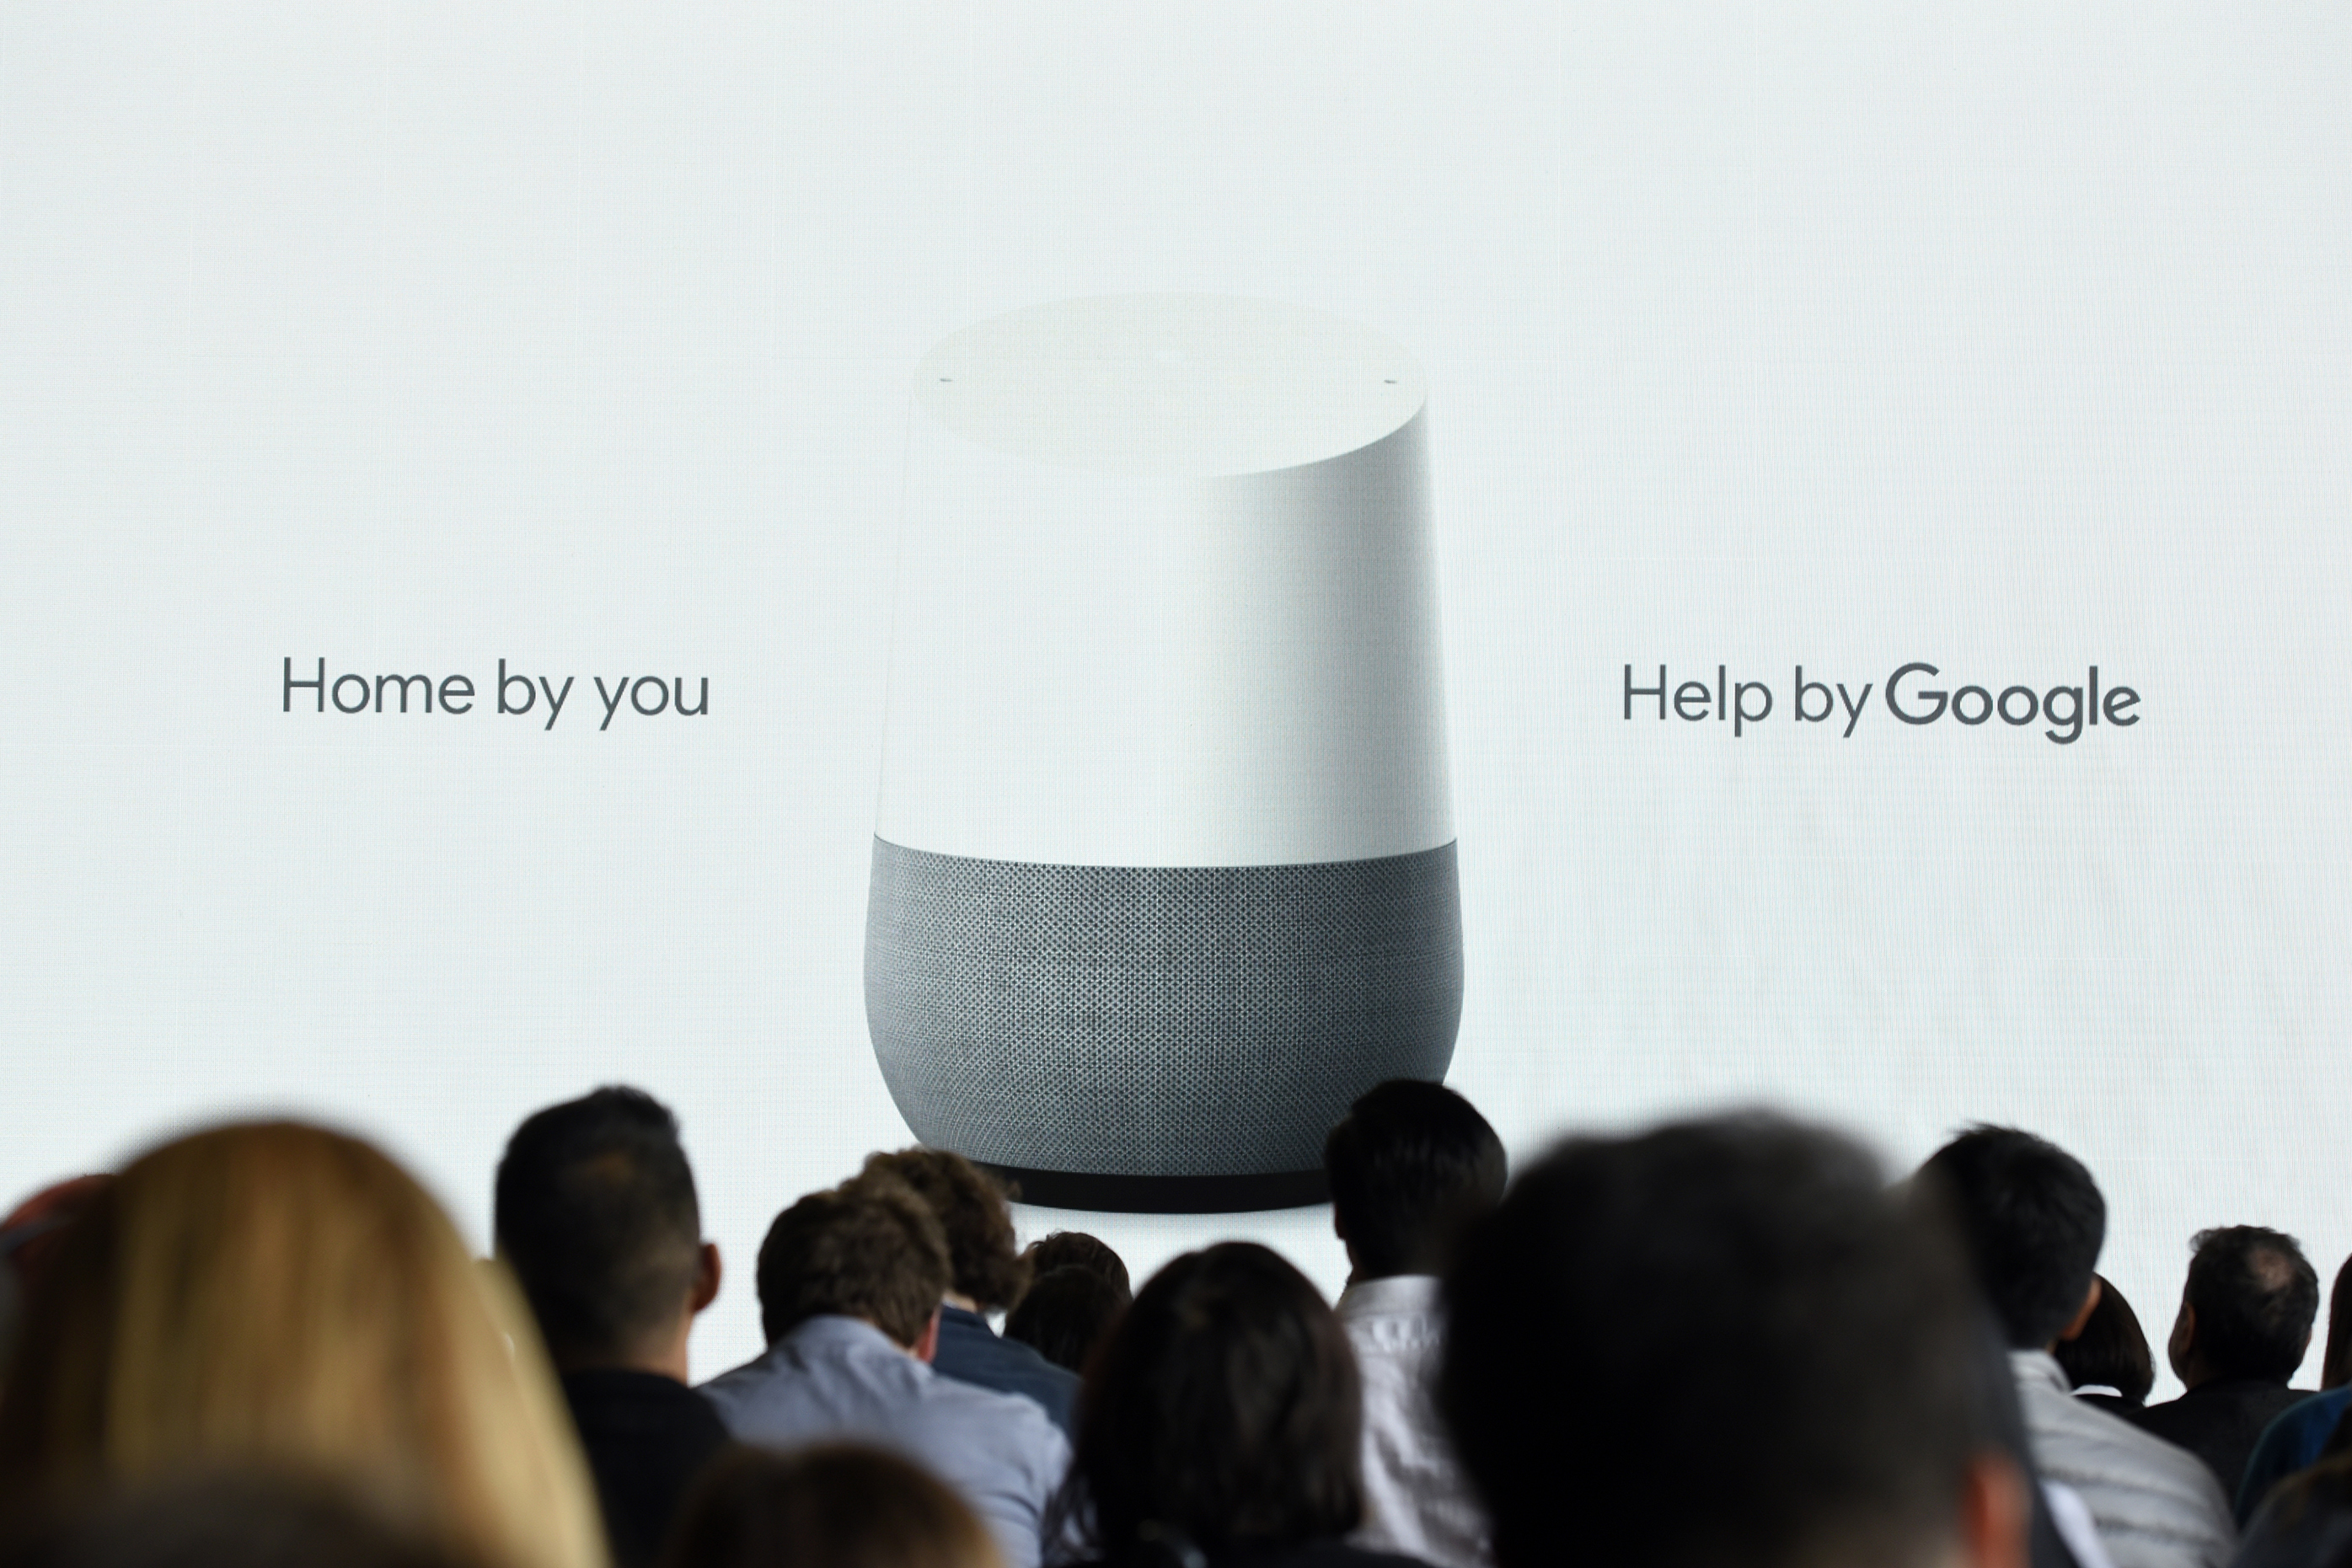 The Google Inc. Home device is displayed on screen during a Google product launch event in San Francisco, California, U.S., on Tuesday, Oct. 4, 2016.